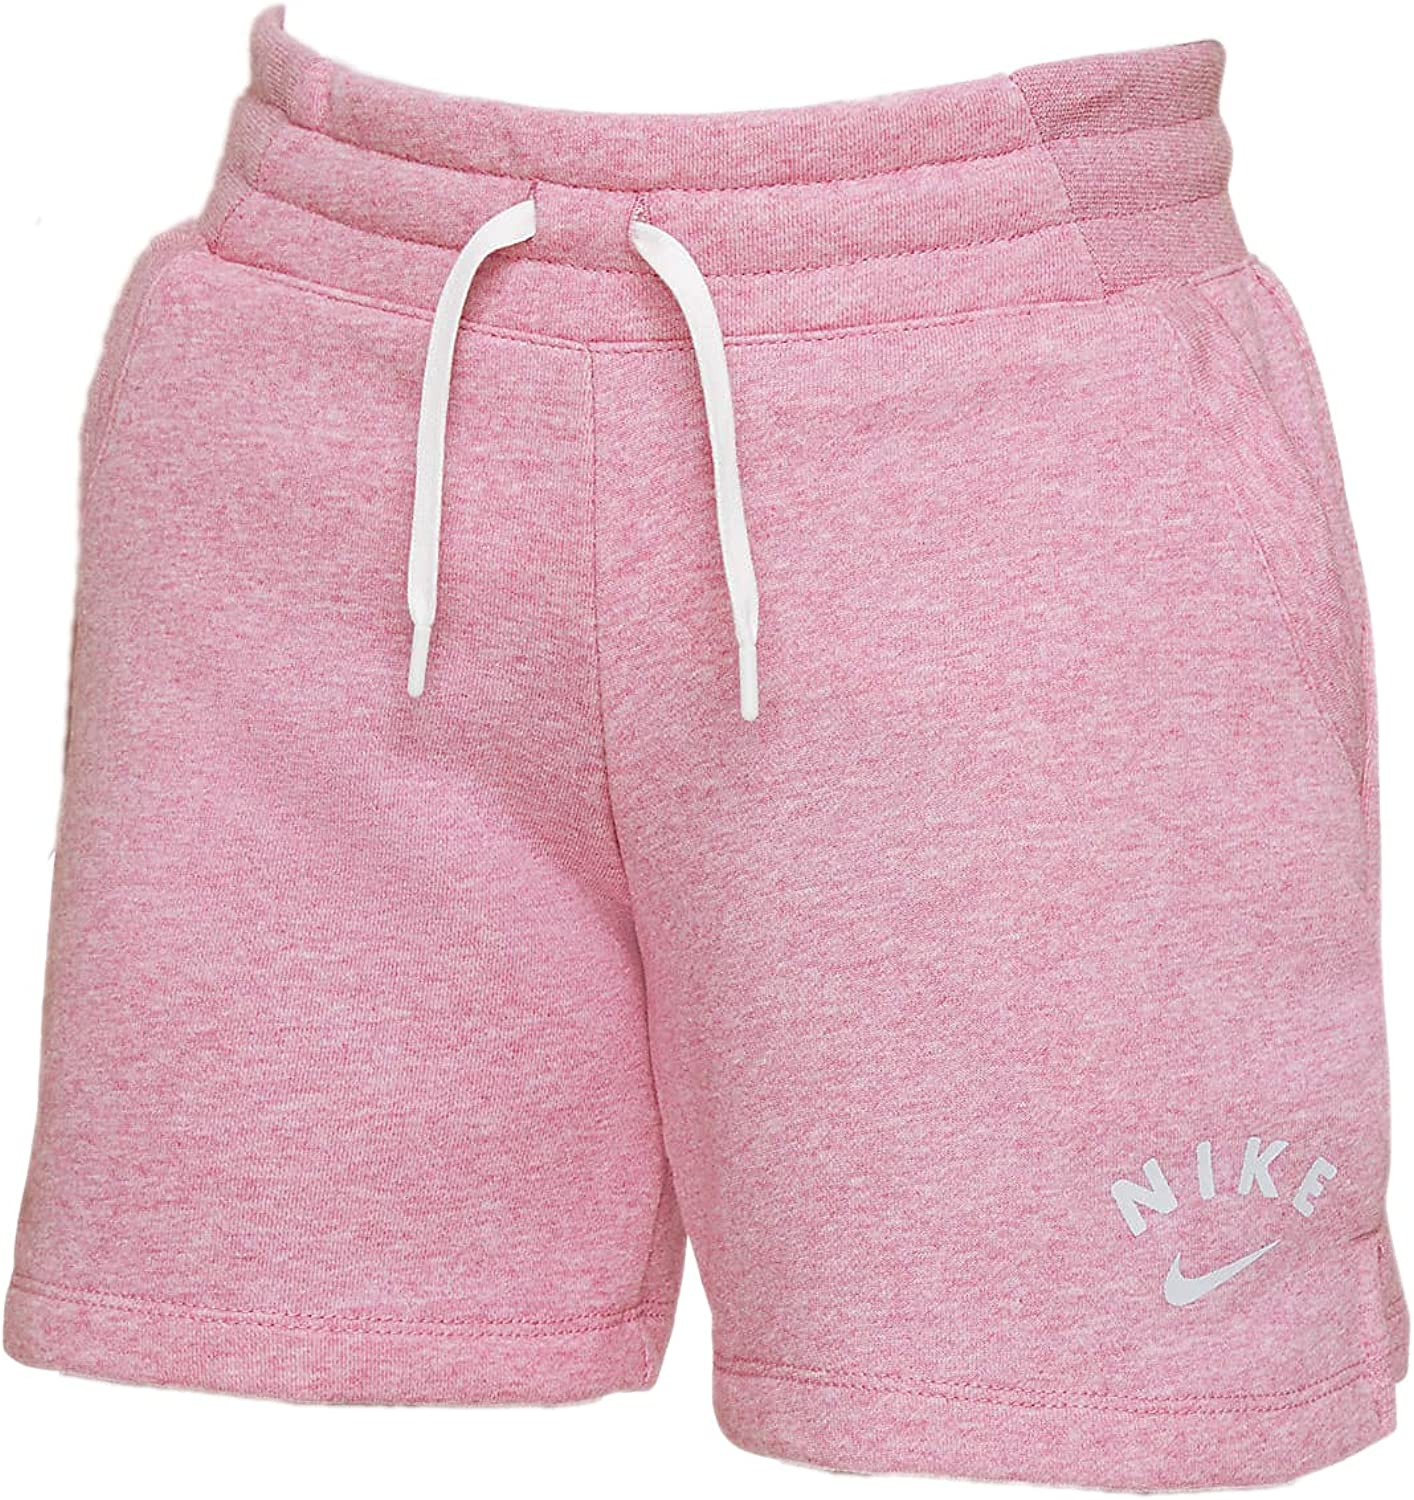 Sportswear French Terry Girls Shorts Big Kids Size Small to Large Color Magic Flamingo